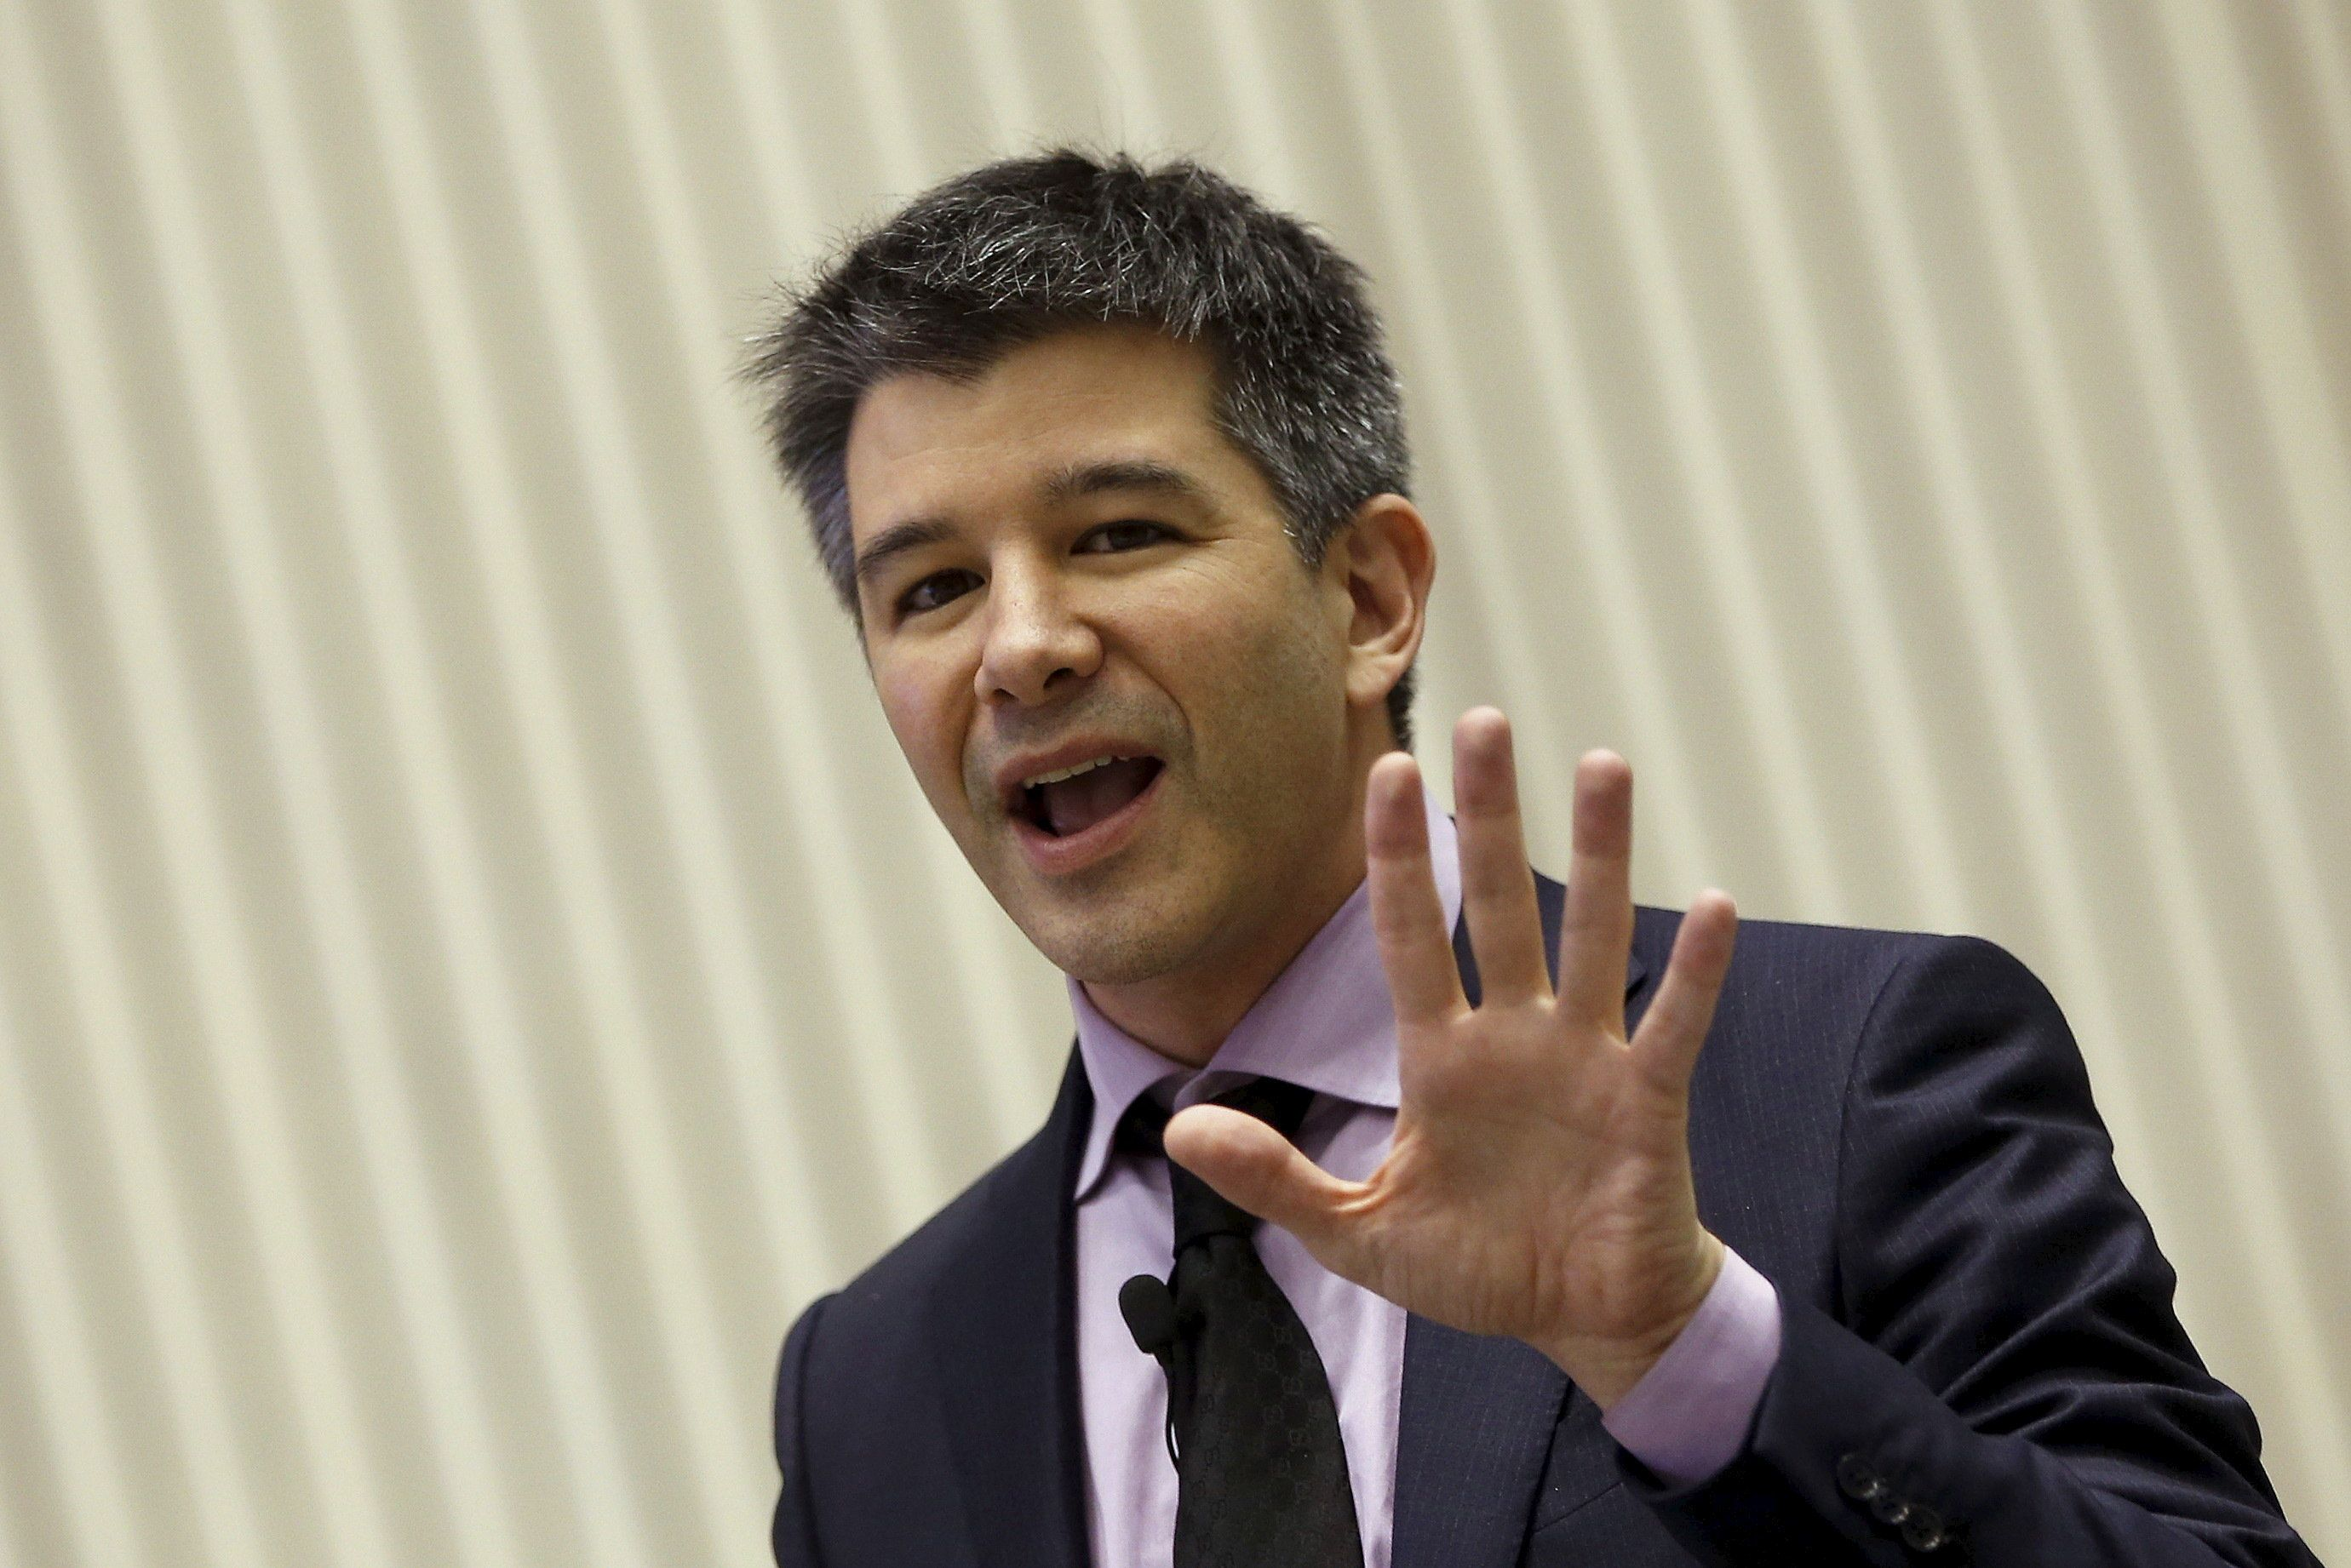 Uber CEO Travis Kalanick gestures as he addresses a gathering during a conference of start-up businesses in New Delhi, India, January 16, 2016. REUTERS/Adnan Abidi